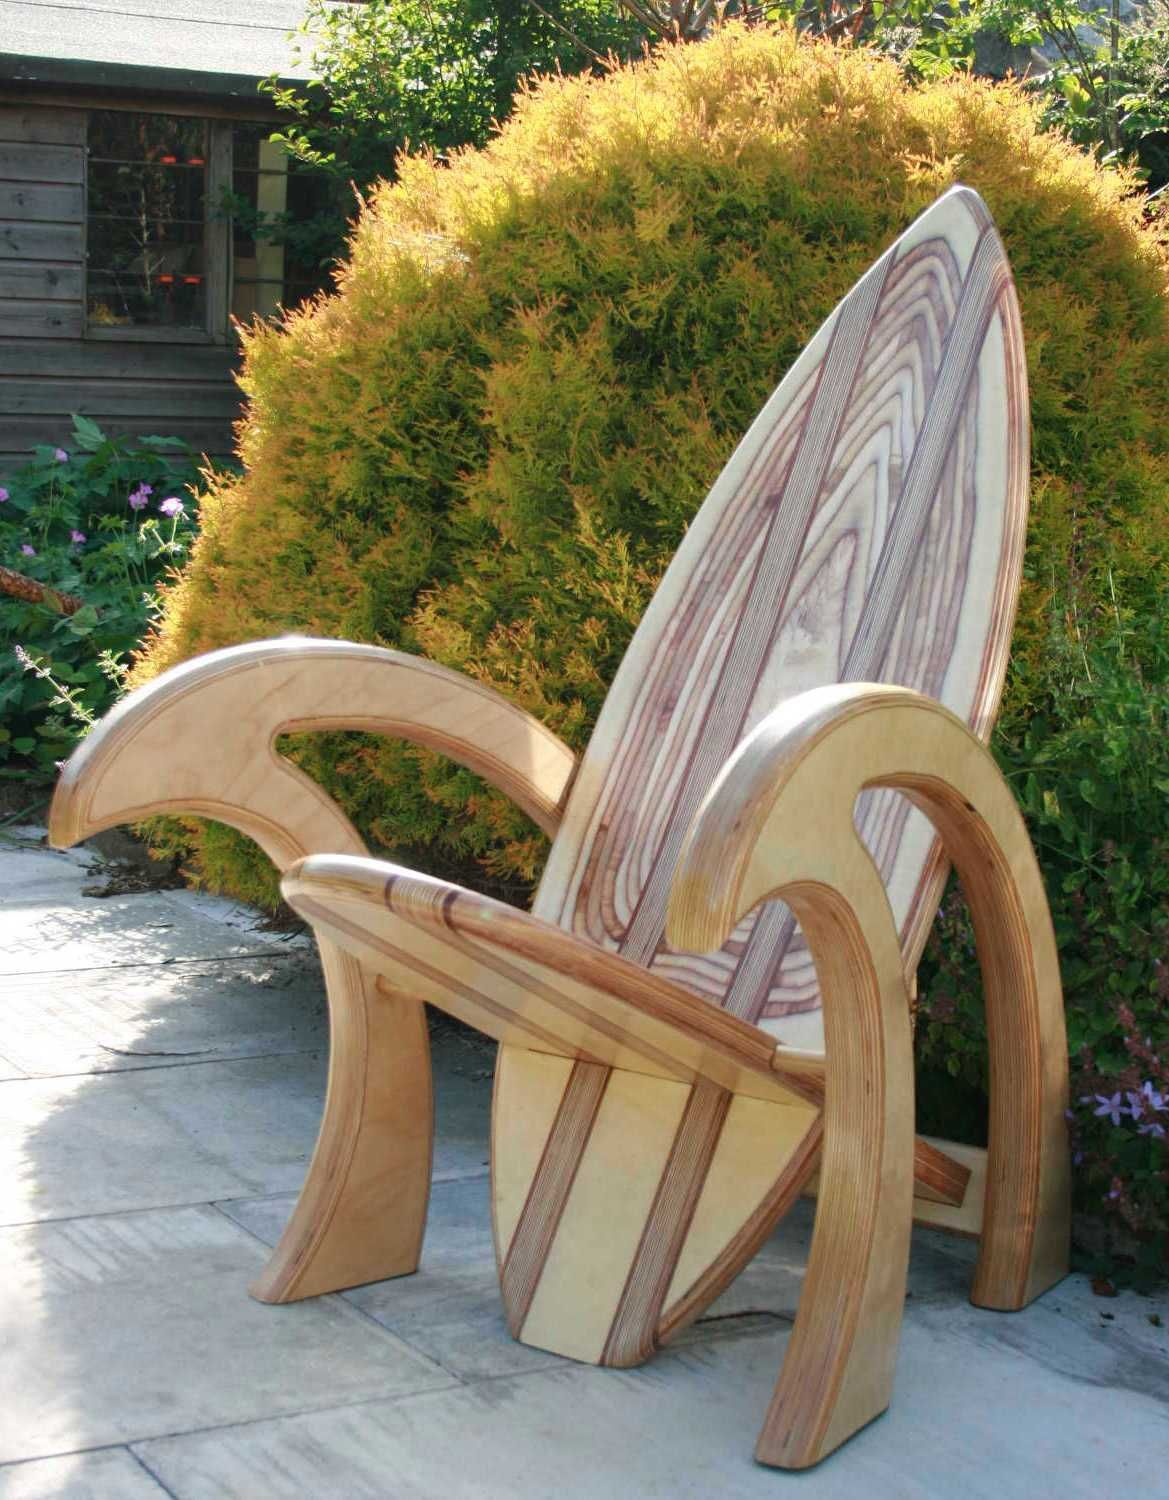 Top 10 Easy Woodworking Projects to Make and Sell #woodworkingprojectschair